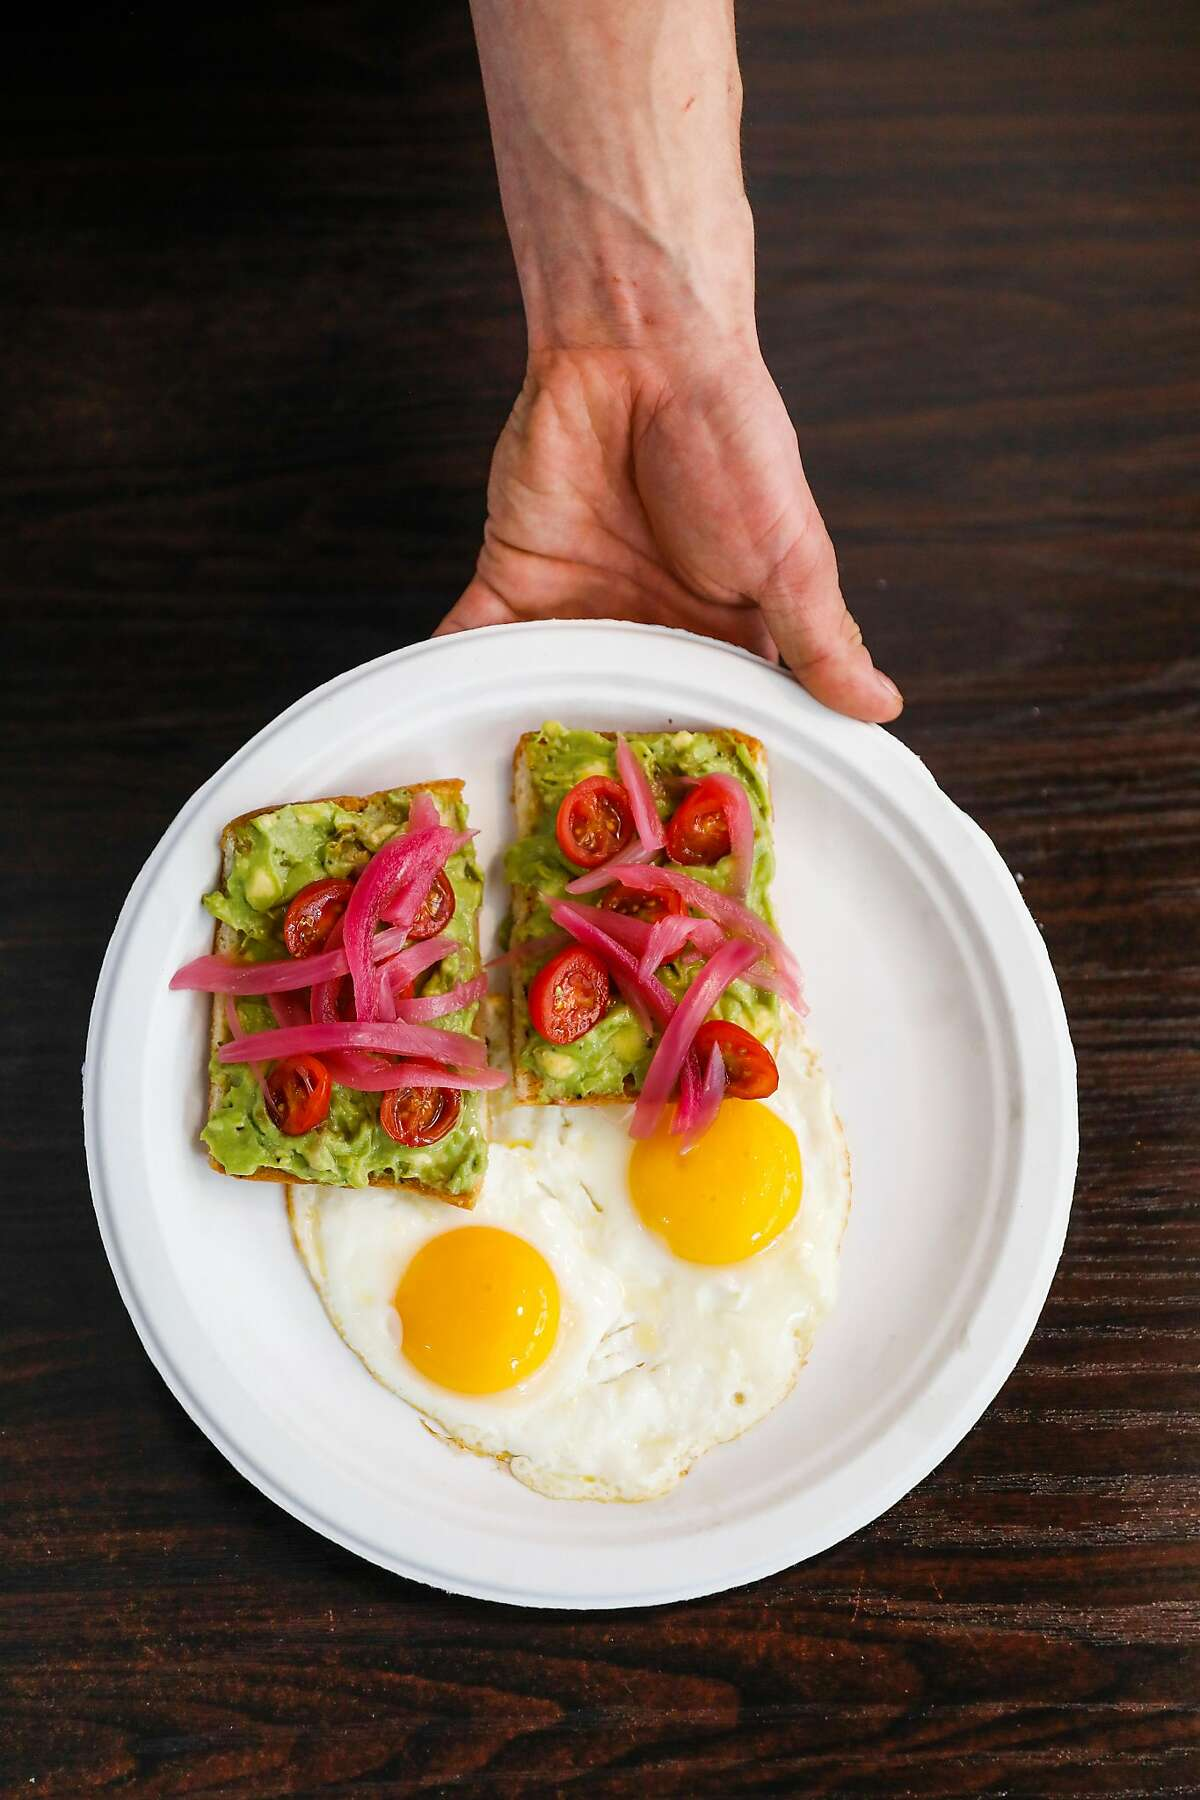 The avocado toast at Delegates restaurant in Oakland, California, on Tuesday, June 4, 2019.